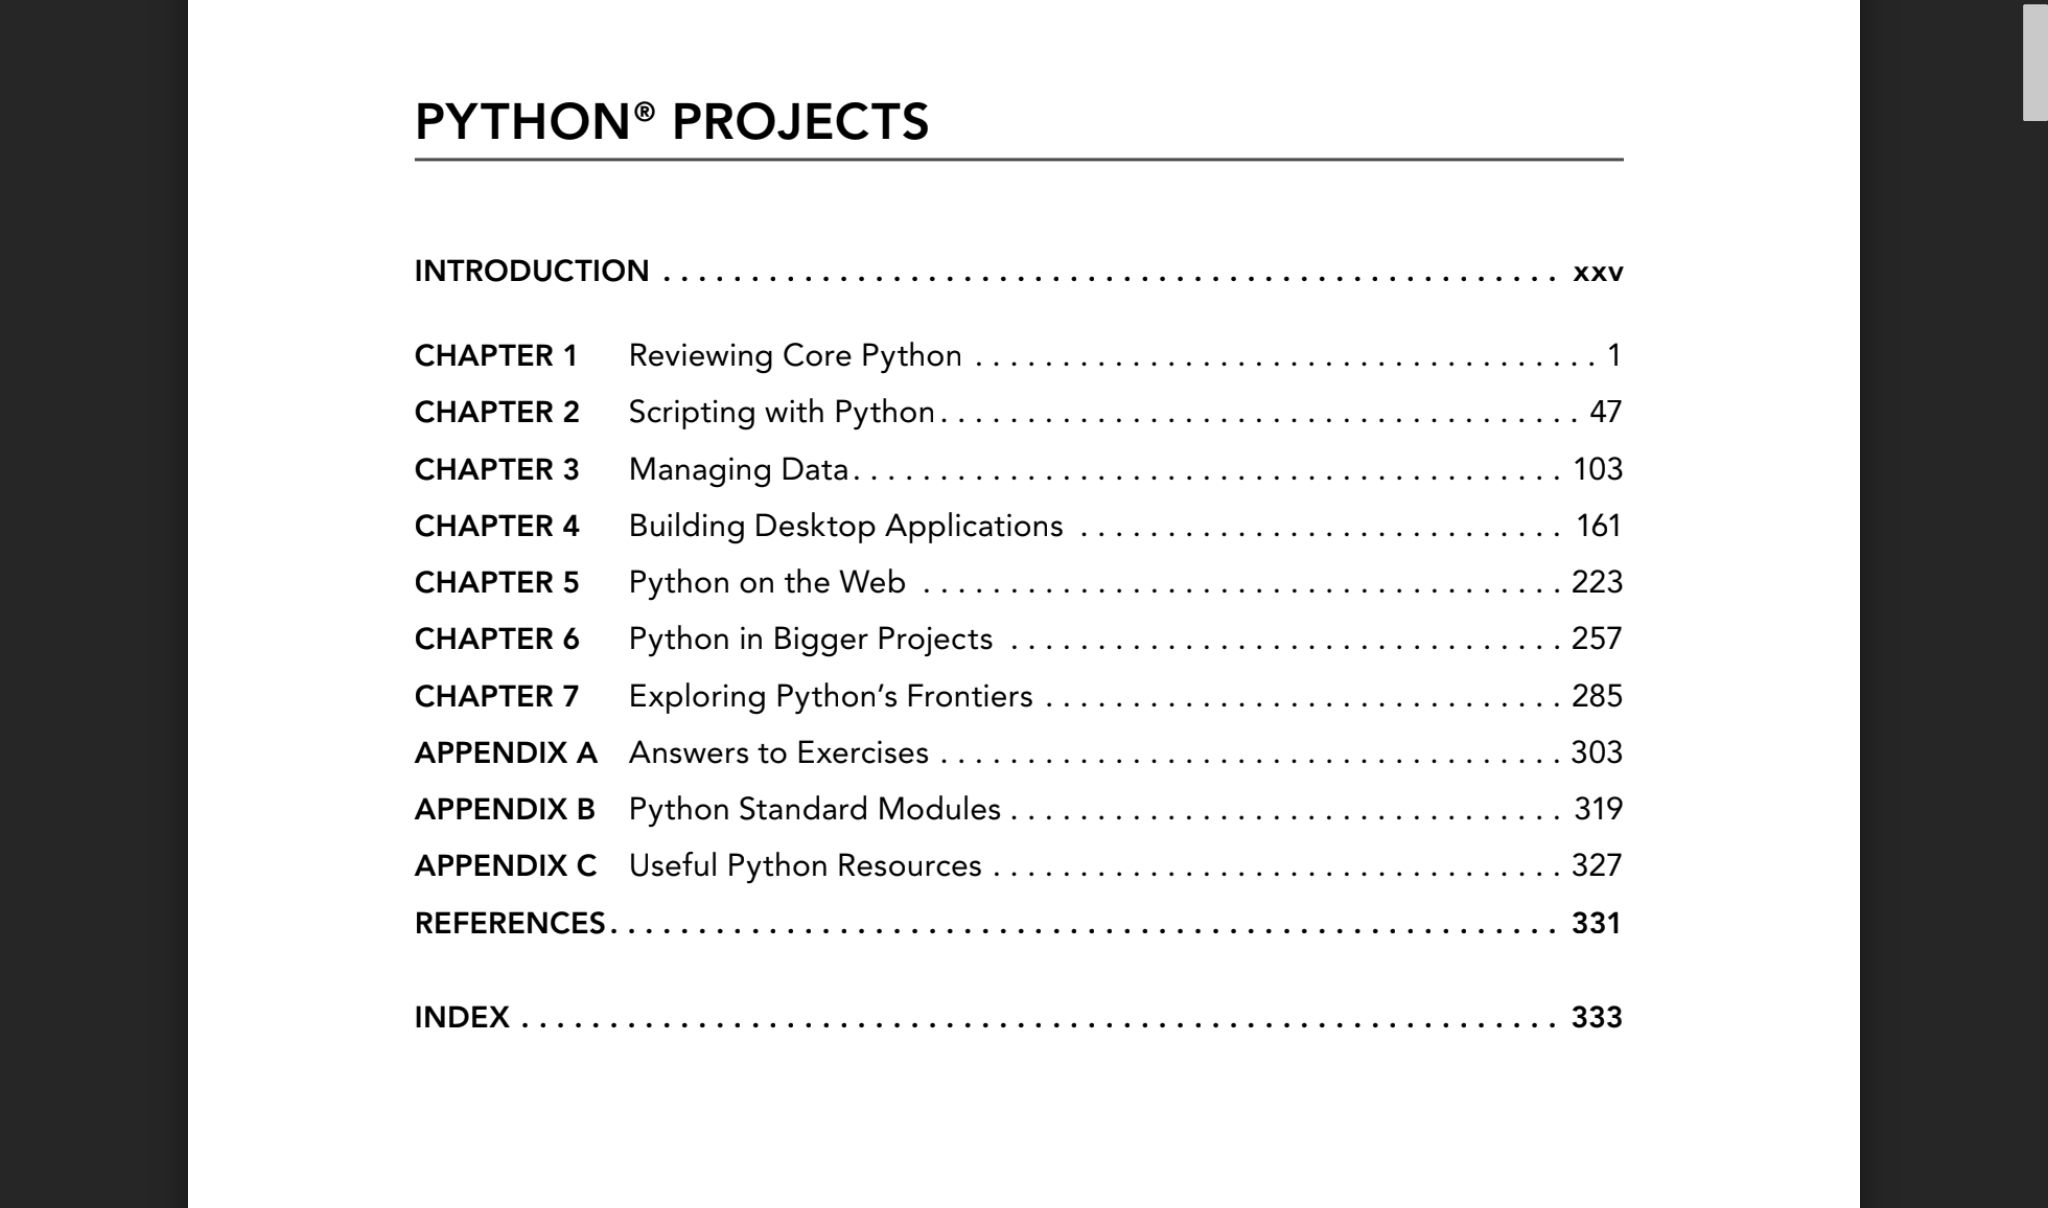 Pin by Grant Sutherland on Tech in 2020 Python, Chapter